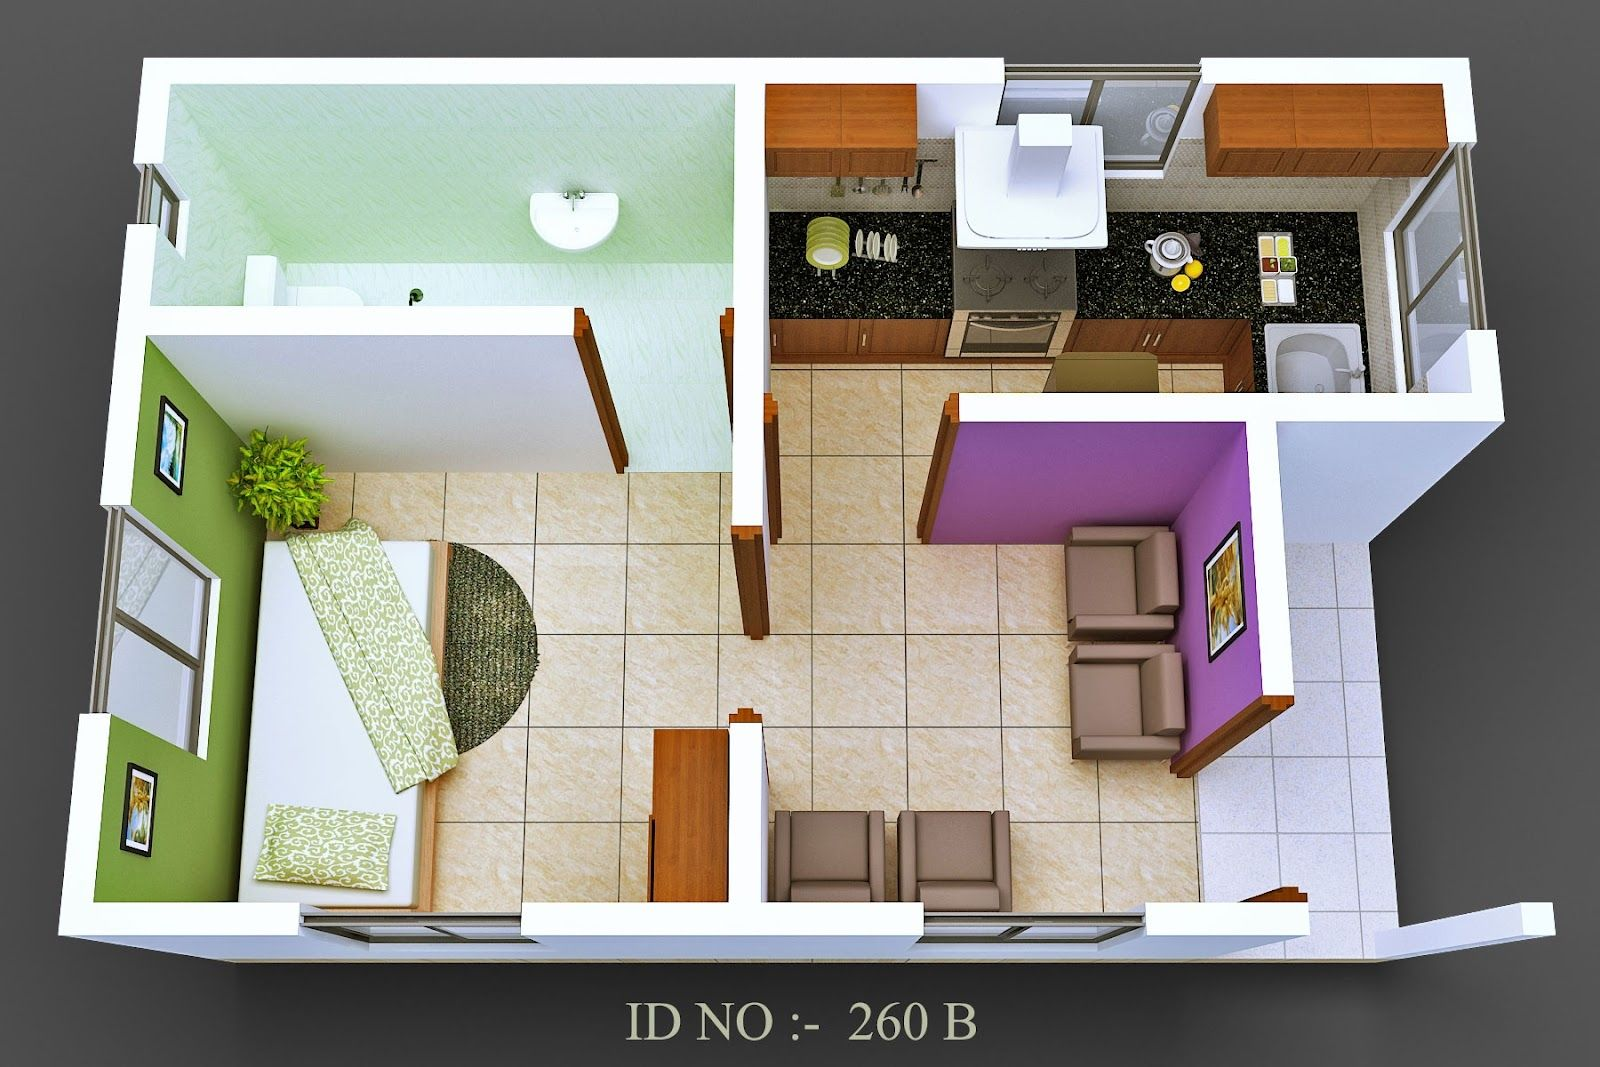 Interior Design House Games Online Free Small House Design Small House Blueprints Small House Design Plans